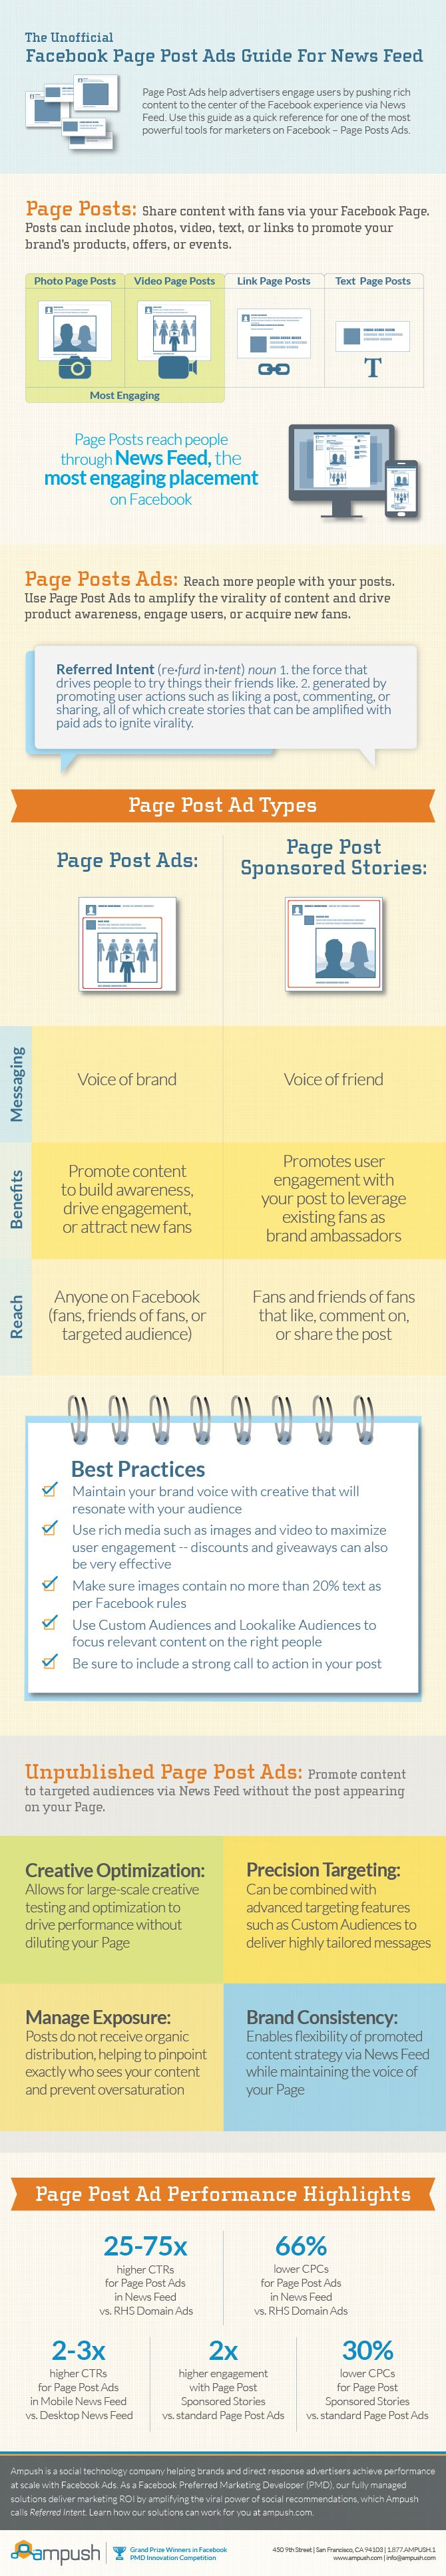 Infographic: A Guide To Facebook Page Post Ads http://marketingland.com/infographic-guide-facebook-page-post-ads-45344